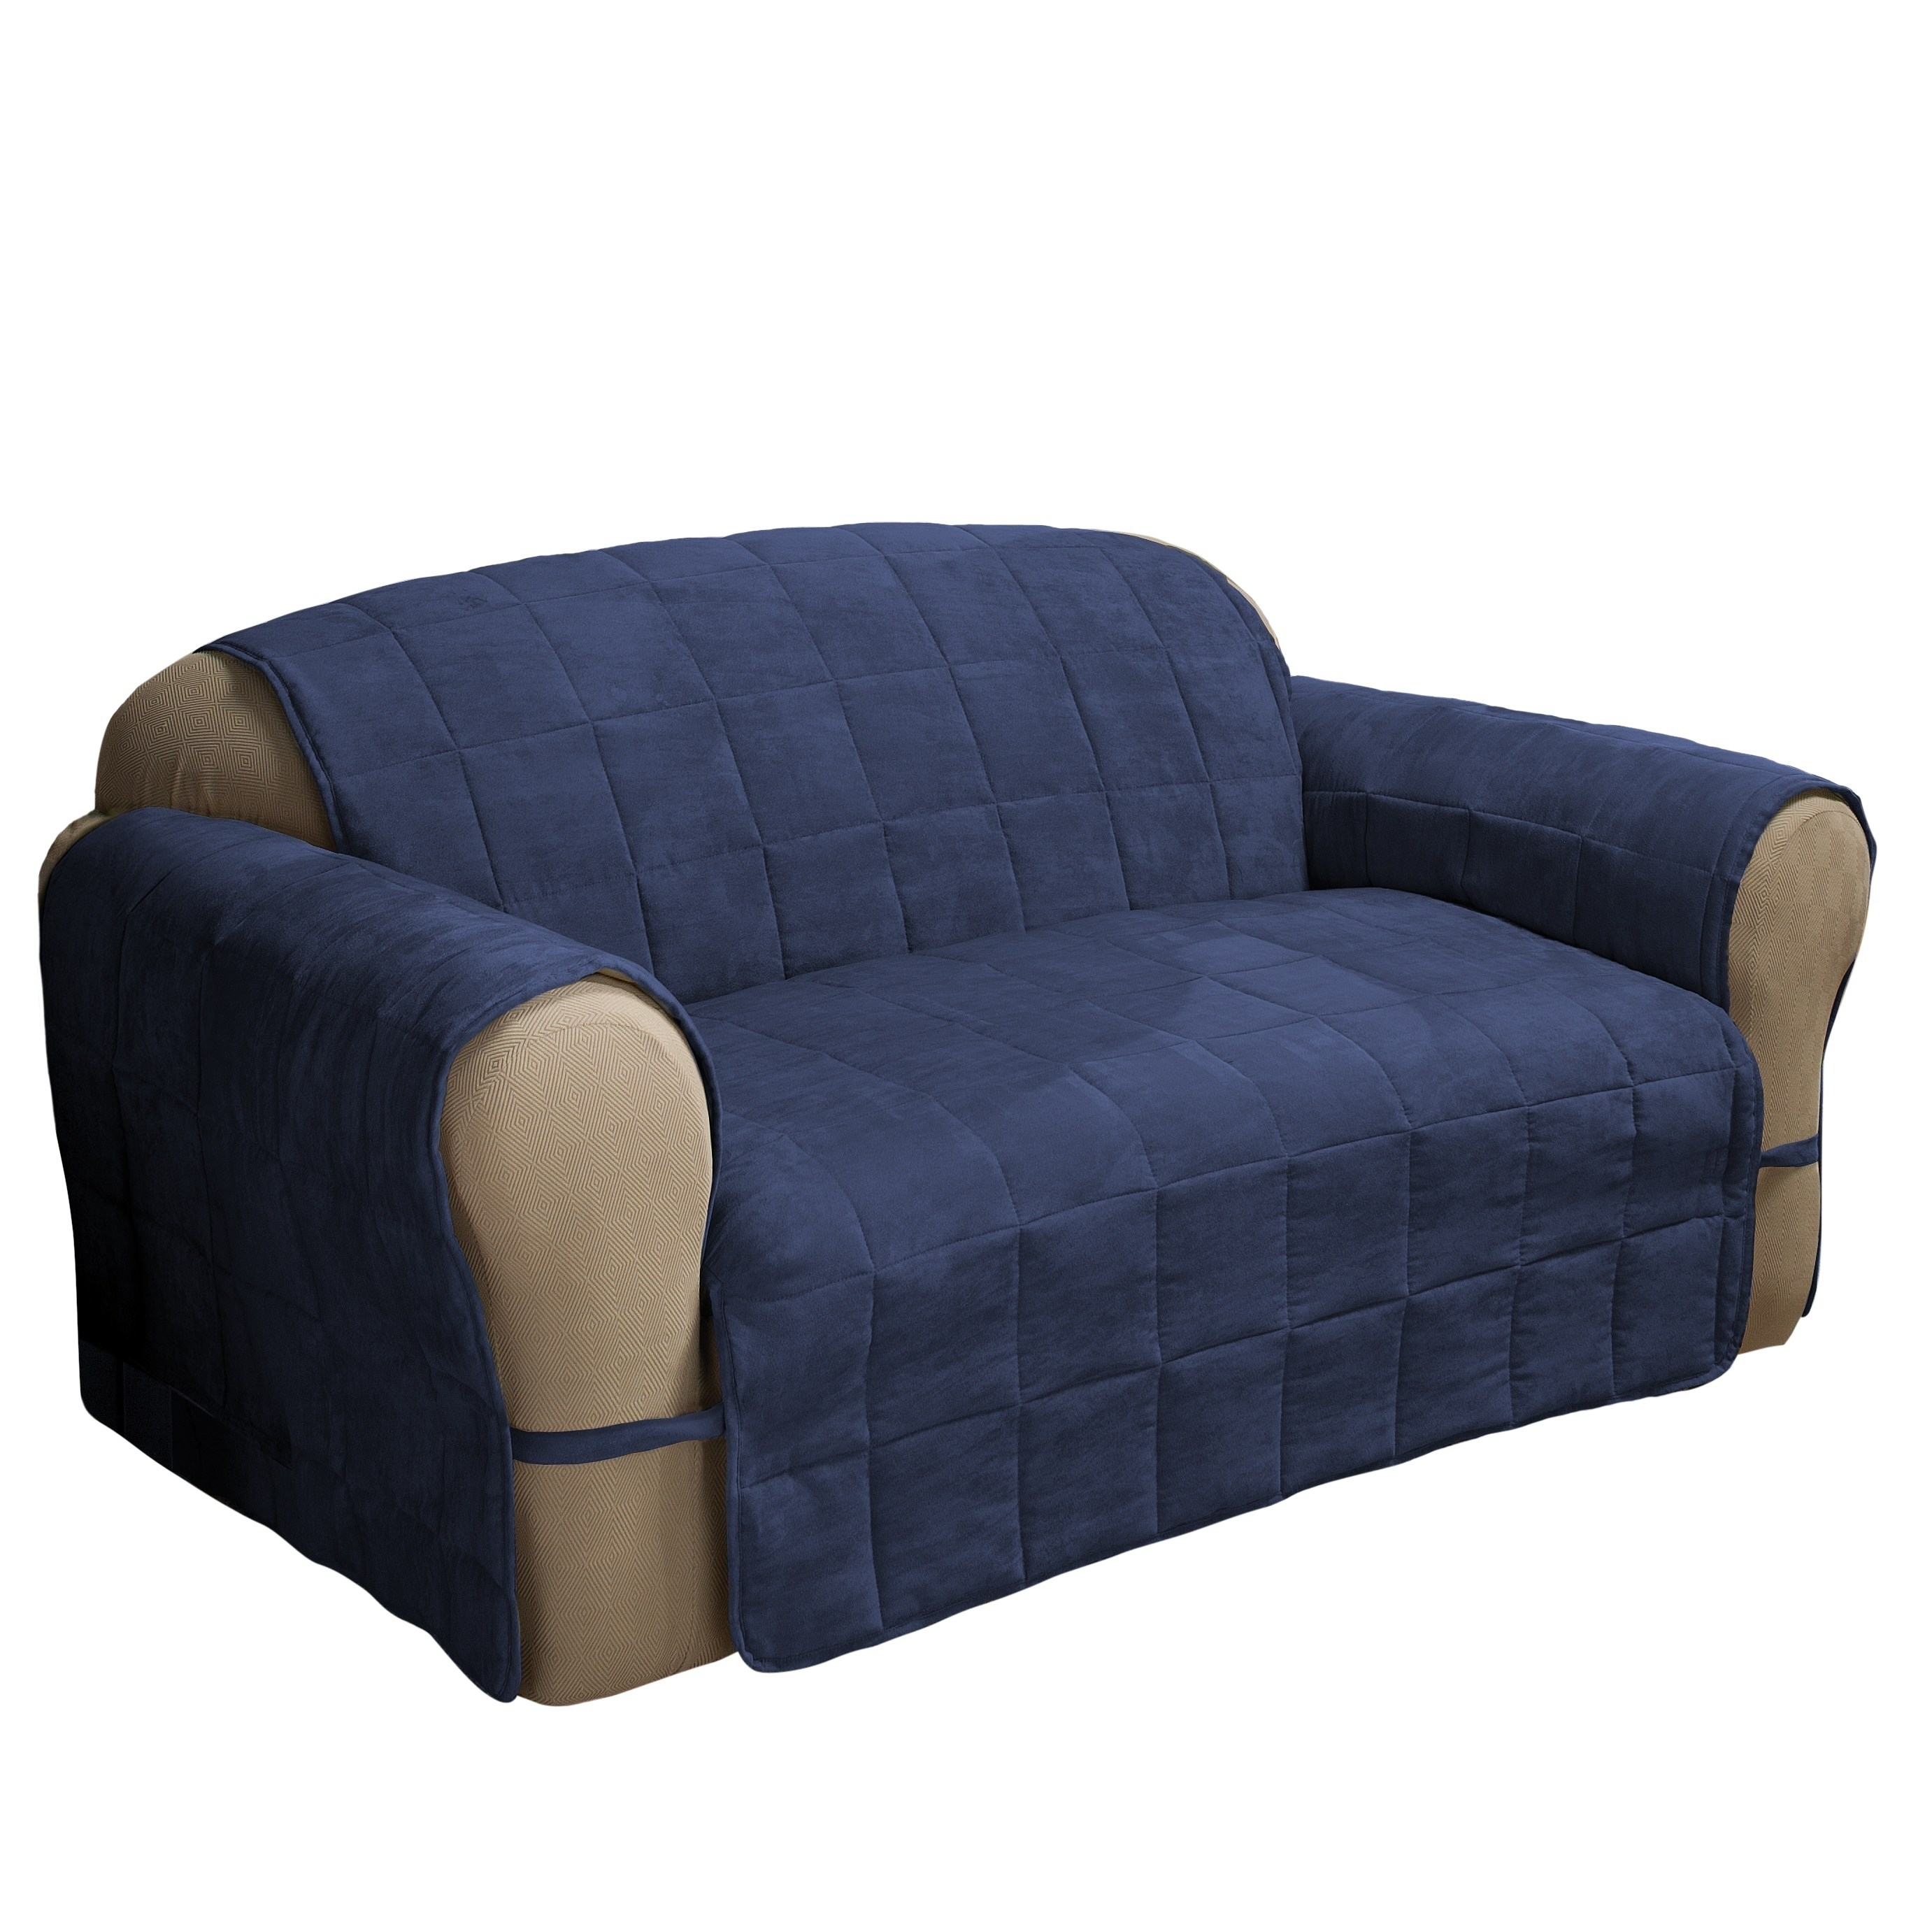 Shop Innovative Textile Solutions Ultimate Faux Suede Loveseat Furniture  Protector - Free Shipping Today - Overstock - 20759069